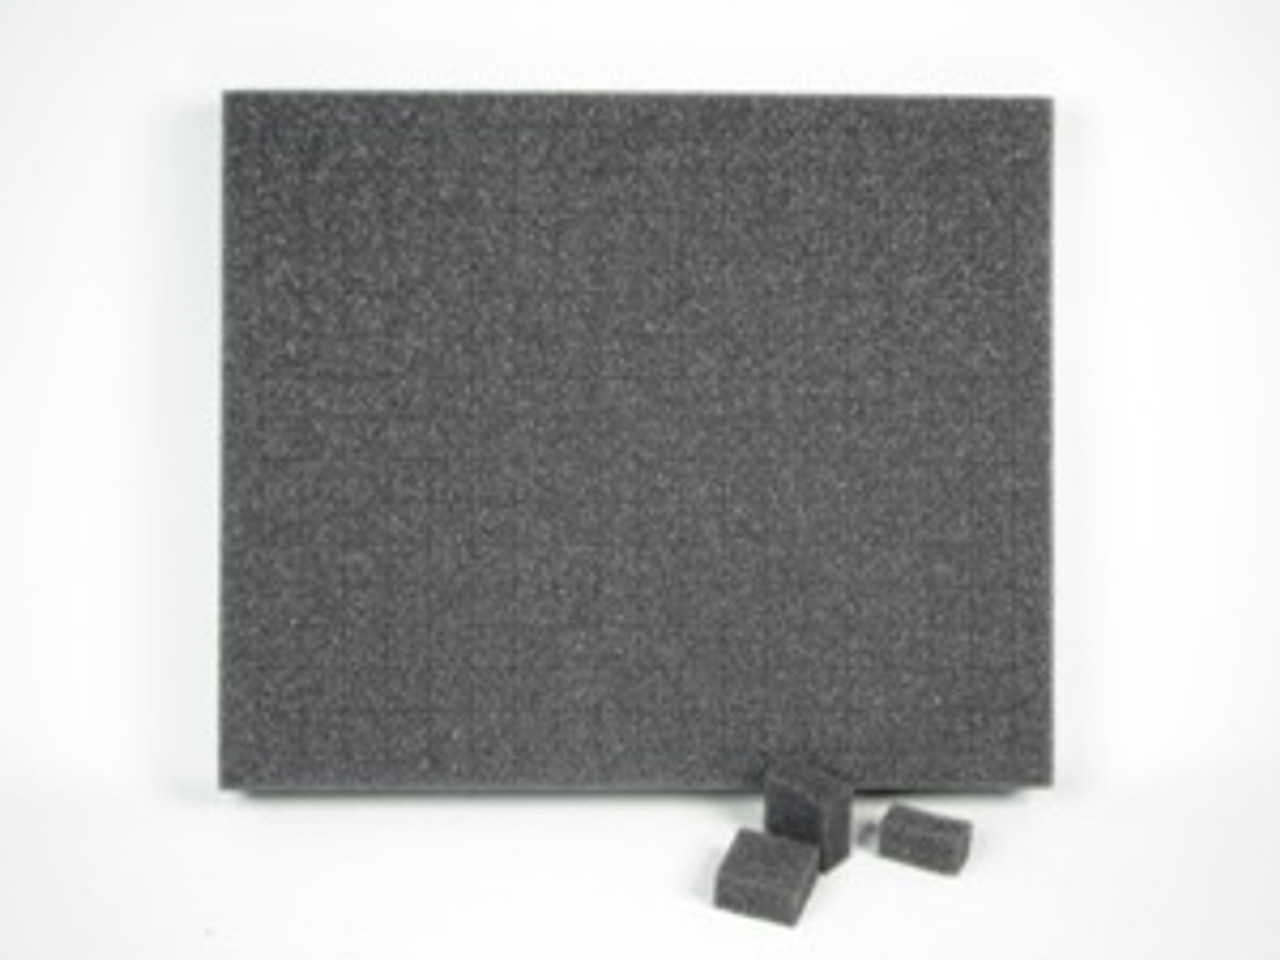 Battle Foam Blitz Pluck Foam Tray Bfb Battle Foam Subito a casa e in tutta sicurezza con ebay! battle foam